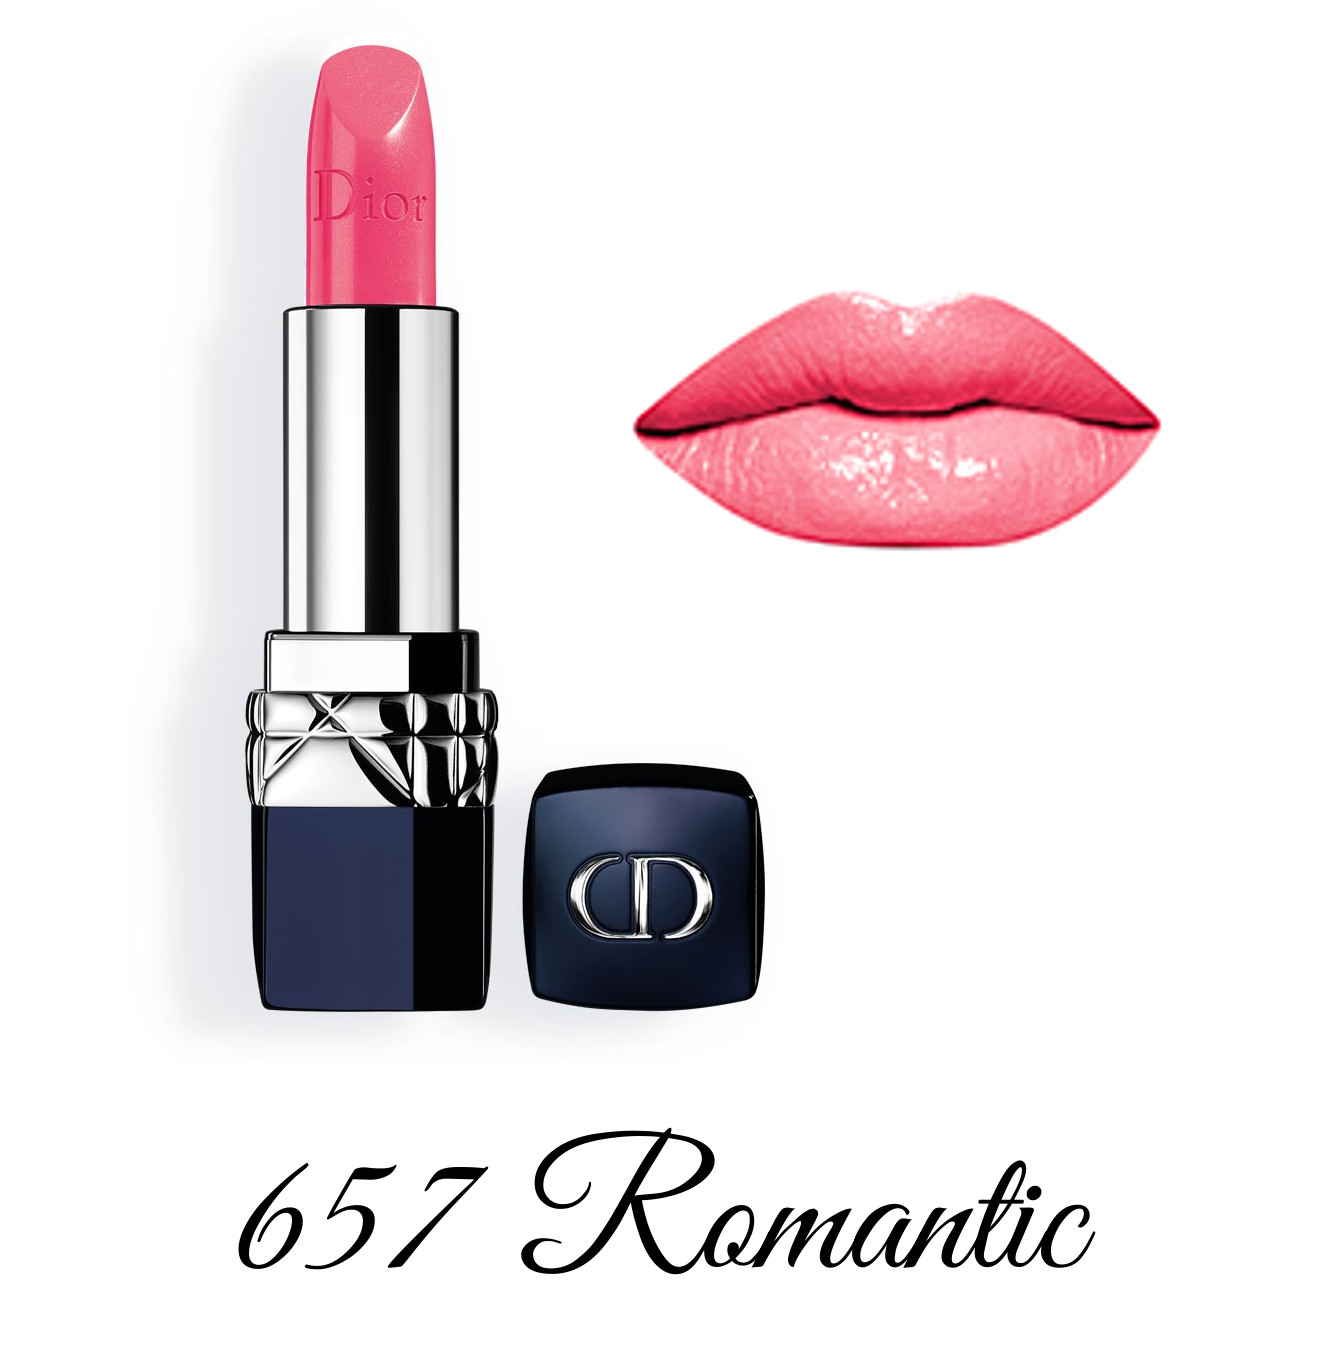 Dior Spring 2018 Collection GLOW ADDICT Rouge Dior 657 Romantic